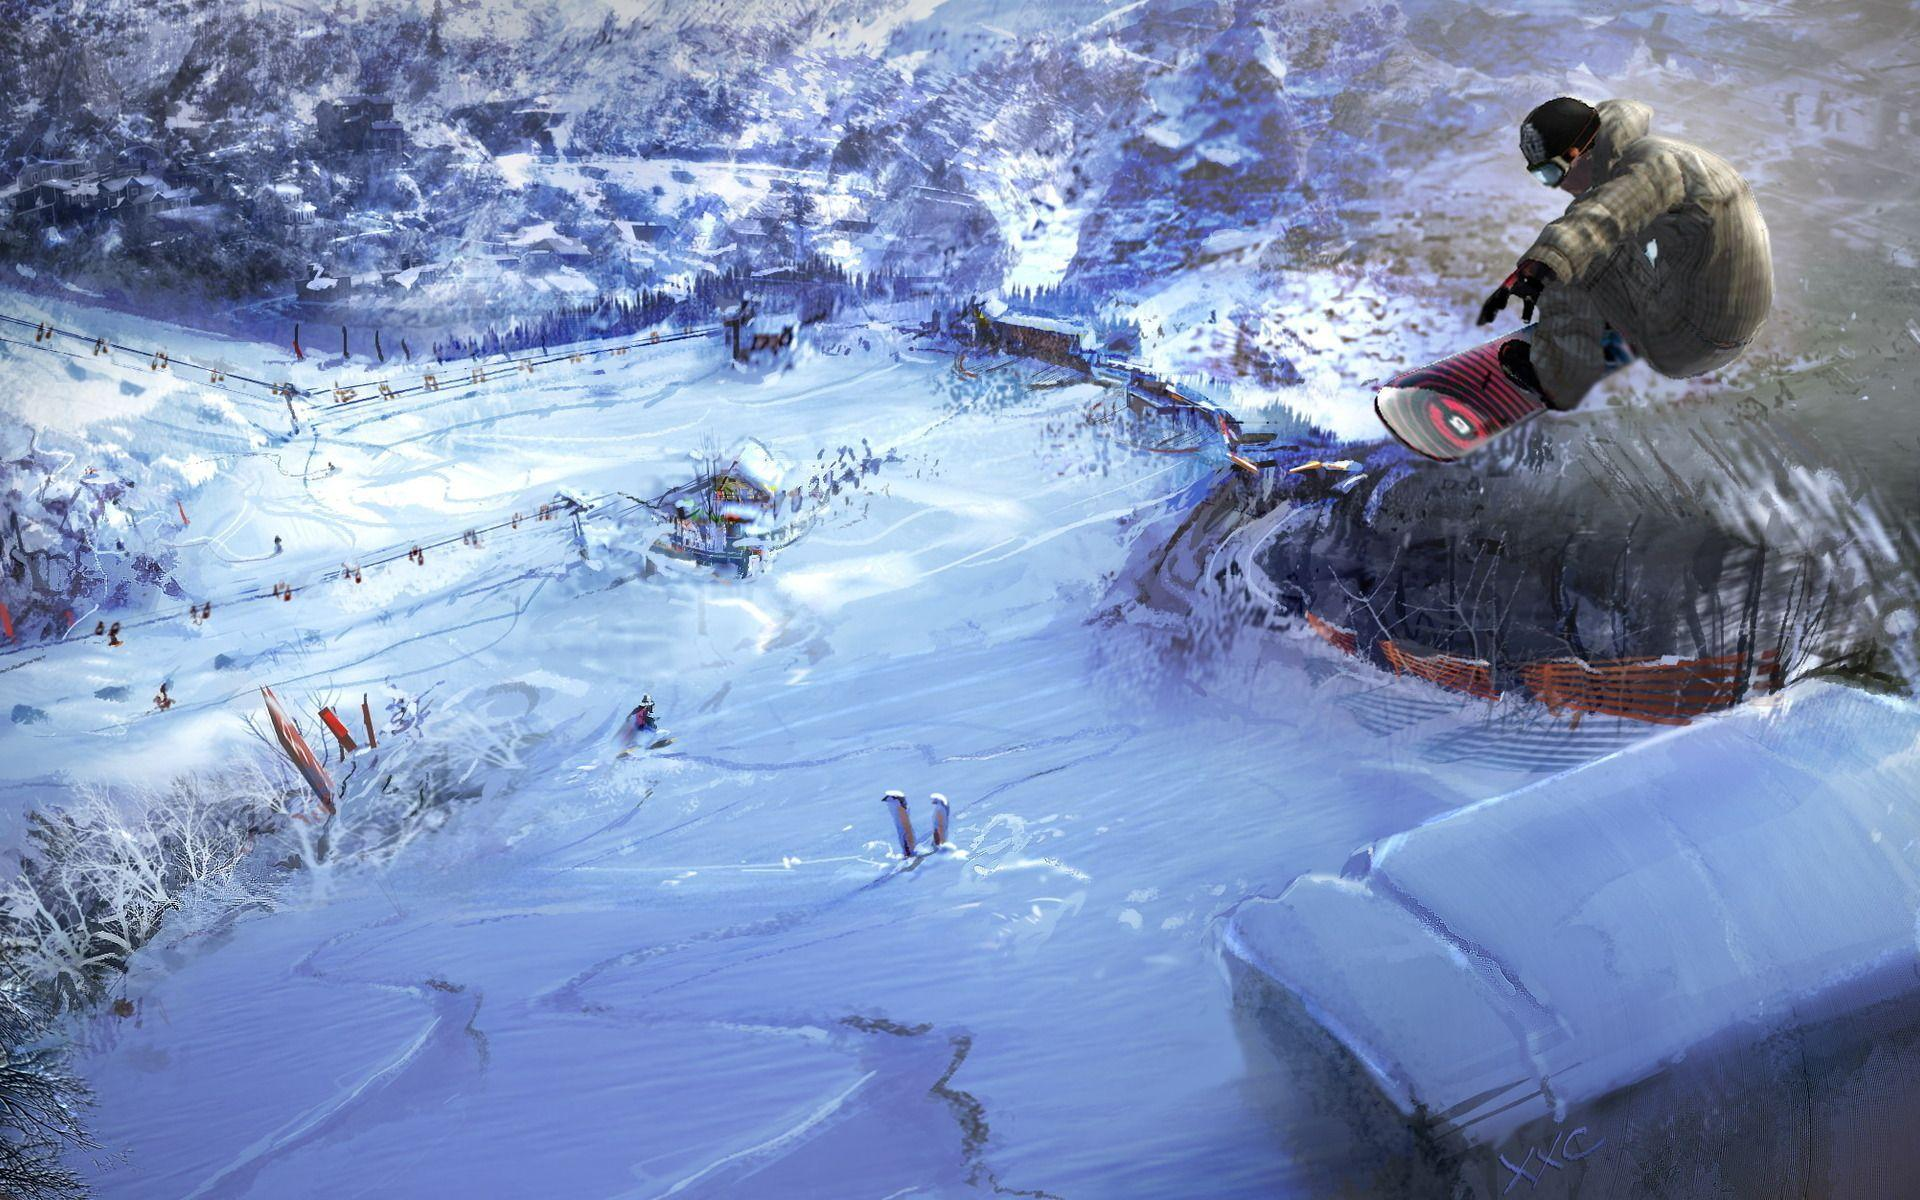 549a80f3d7e Snowboard Wallpapers - Full HD wallpaper search - page 3